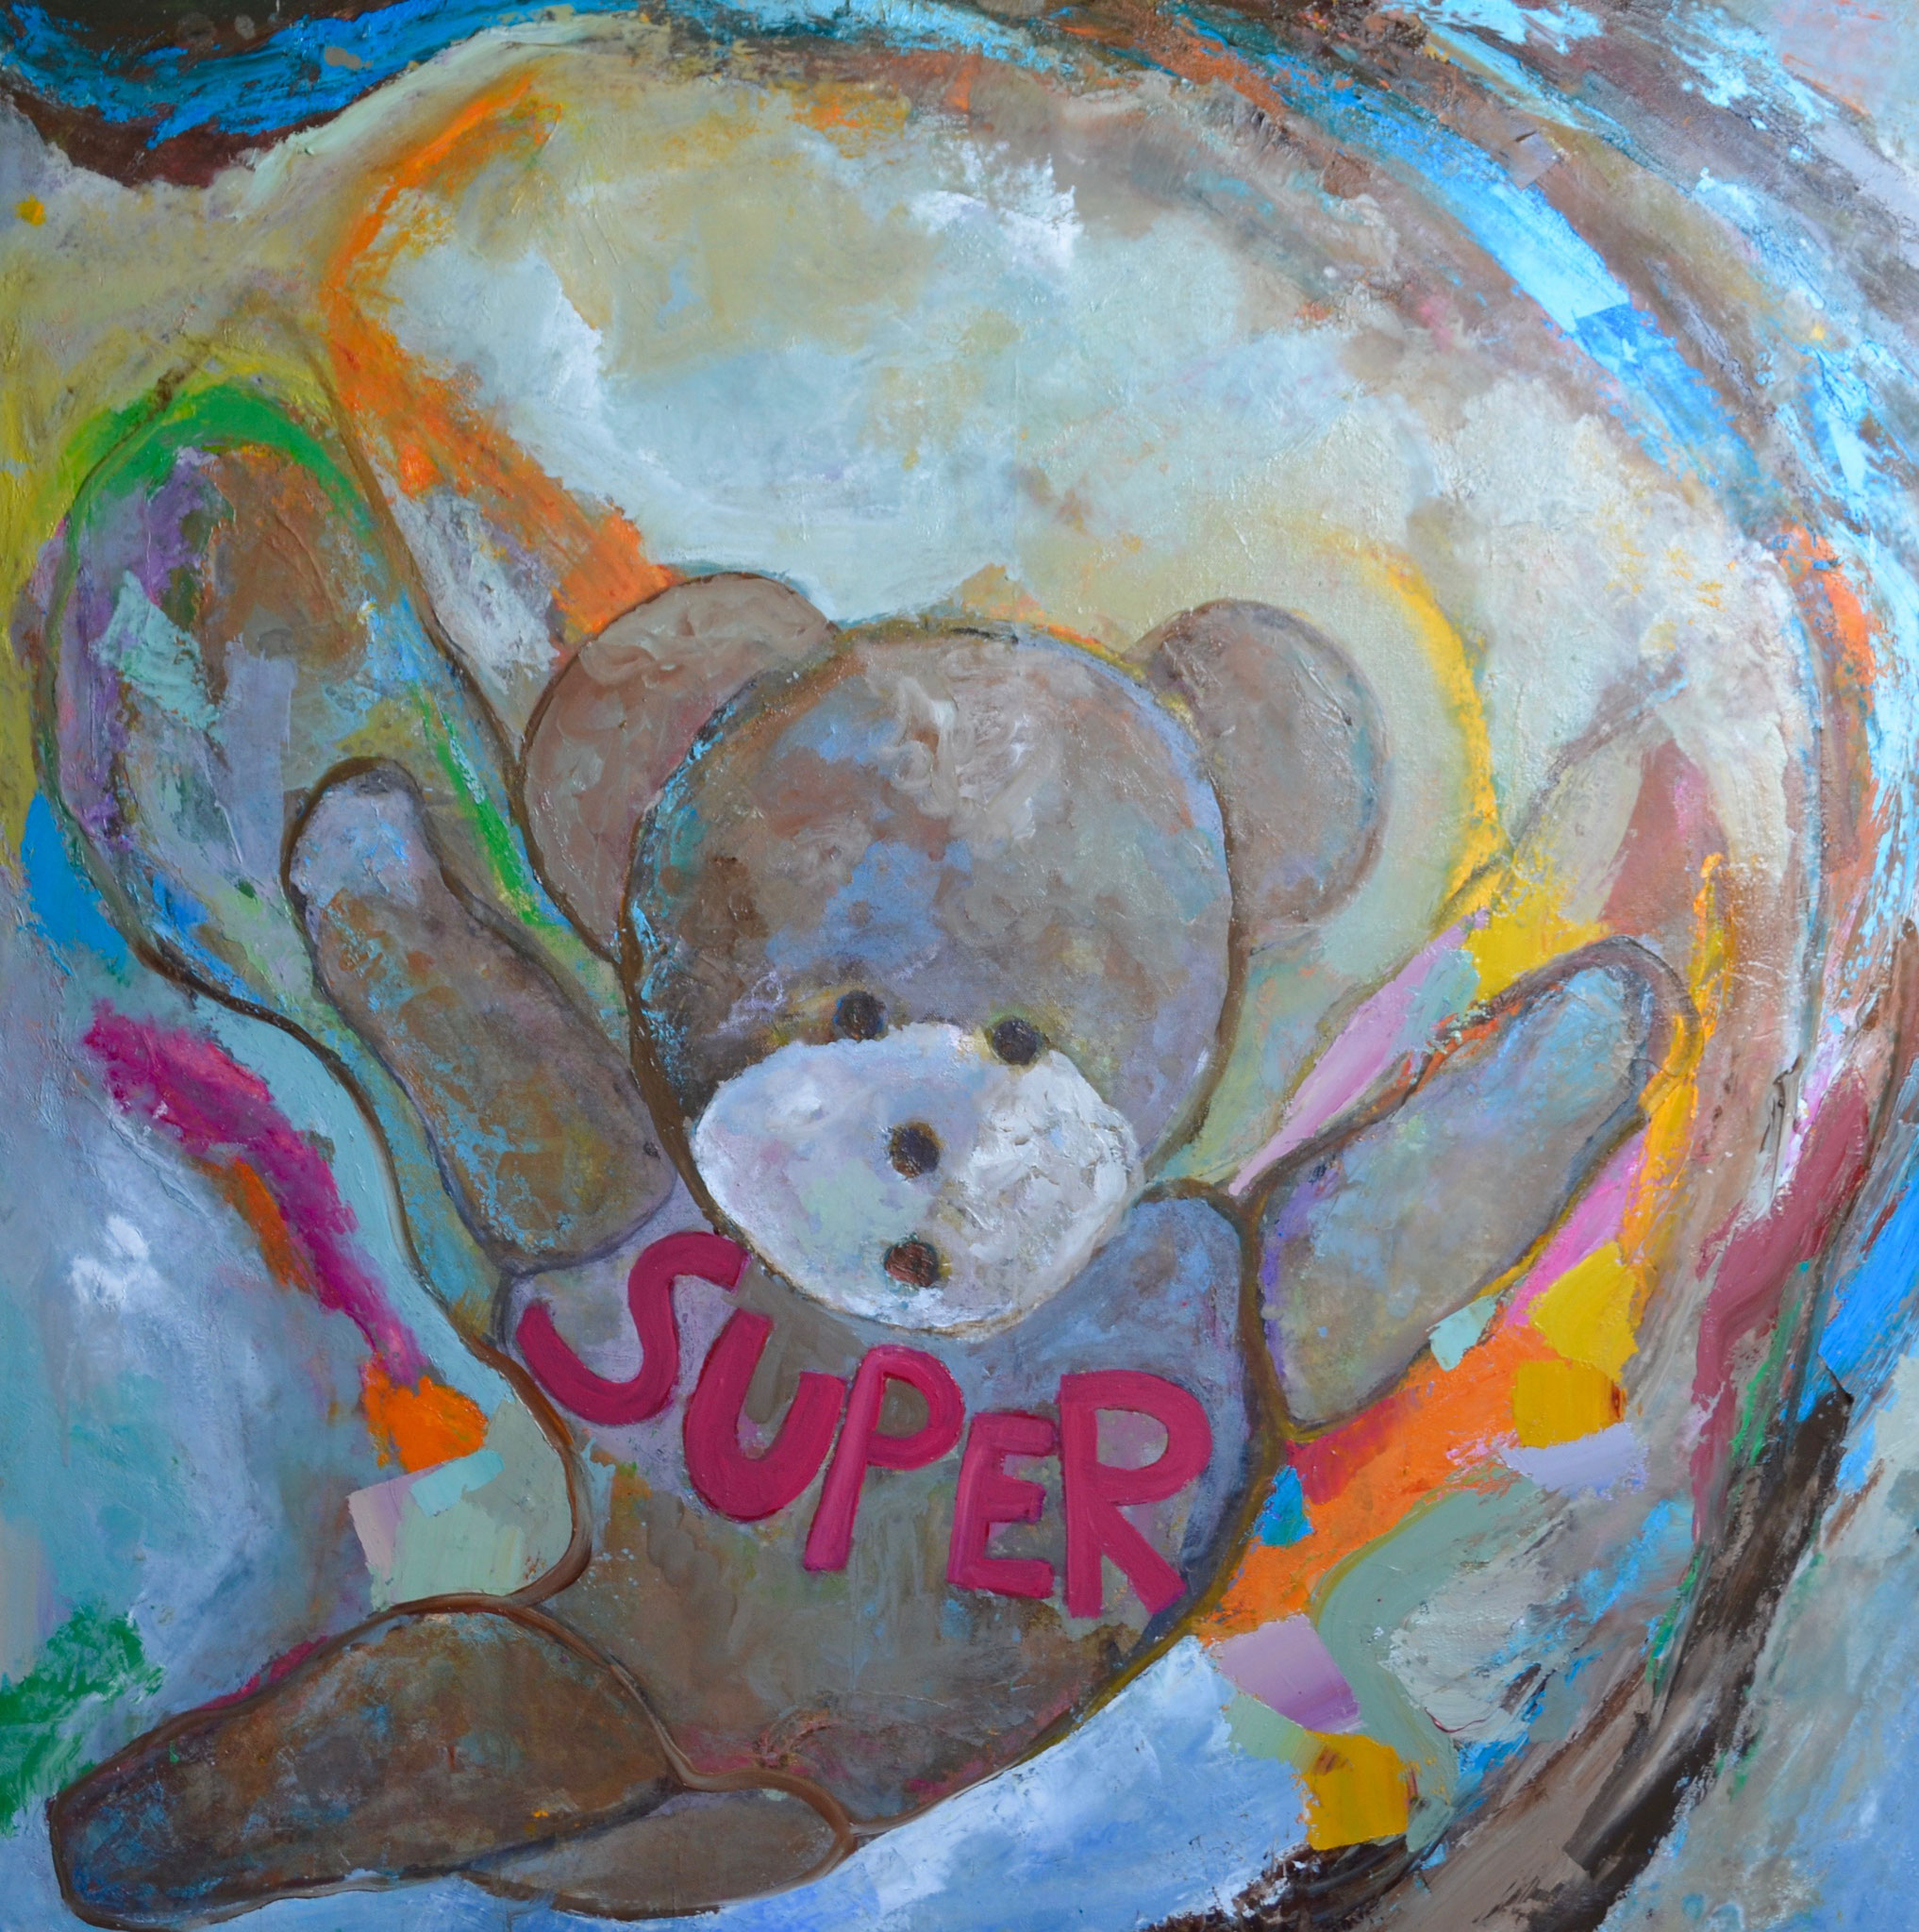 SUPER OURSON - Toile/canvas - 100x100 cm